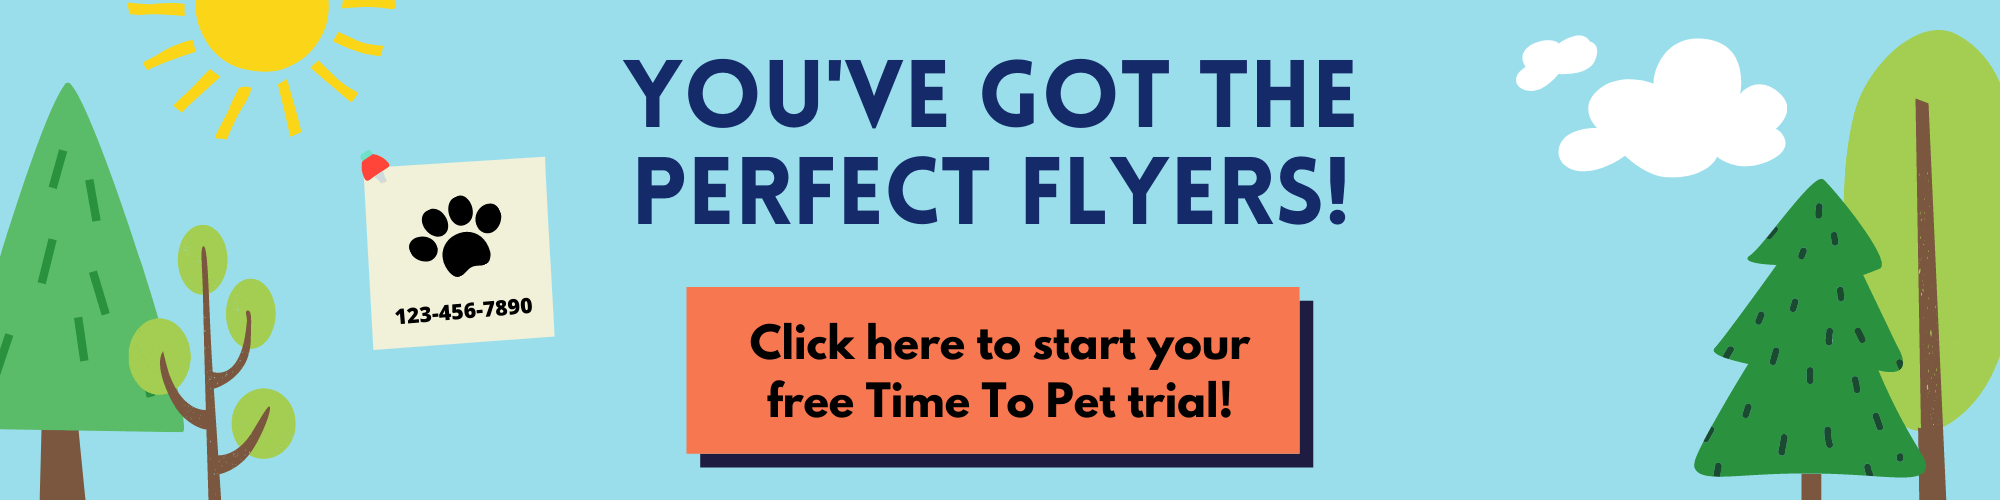 Free-Trial-CTA-pet-sitting-Flyers